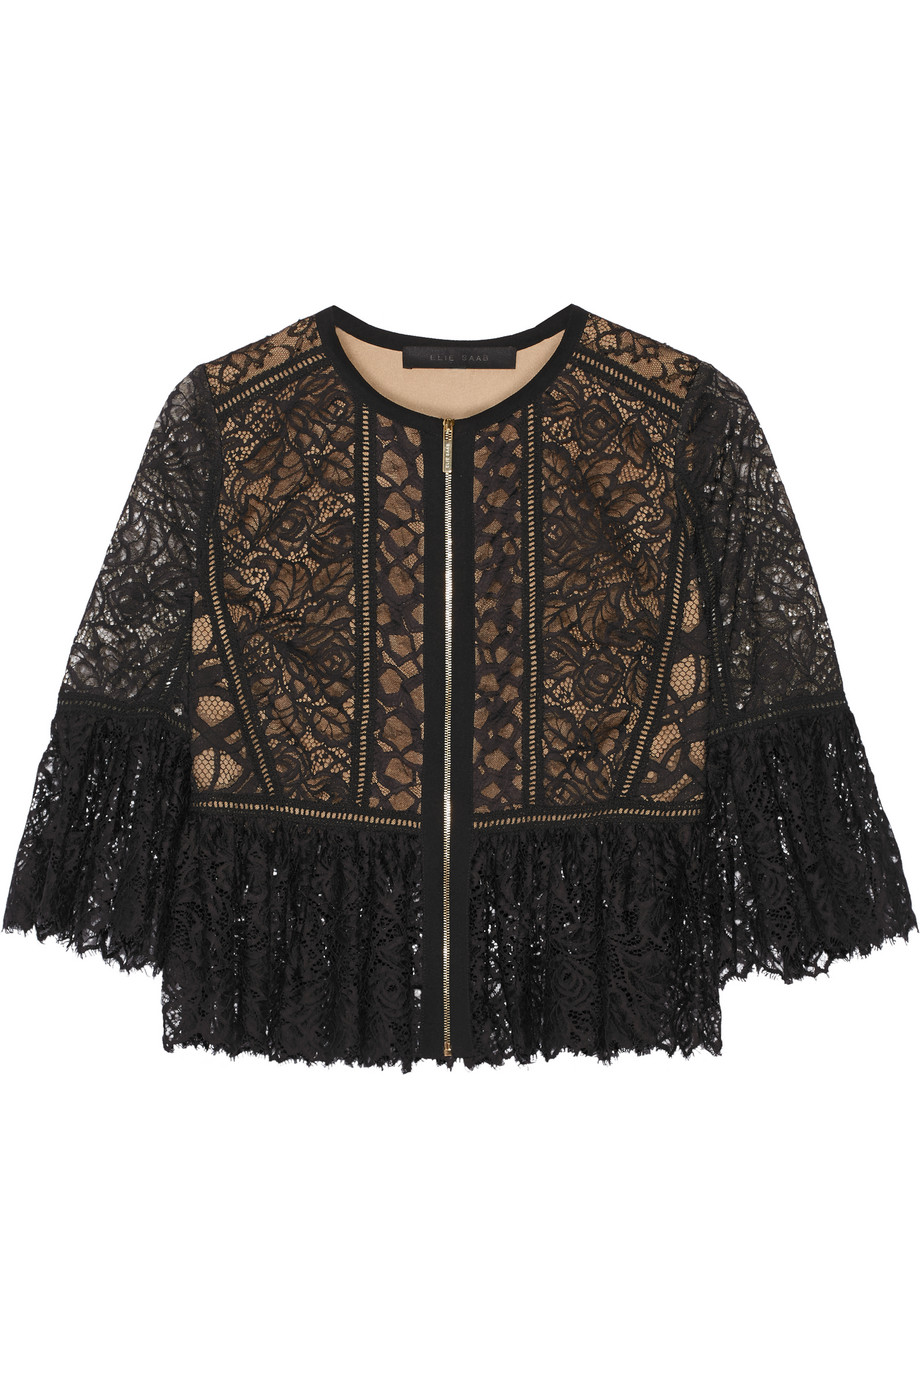 Elie Saab Cotton-Blend Lace Jacket, Black, Women's, Size: 40